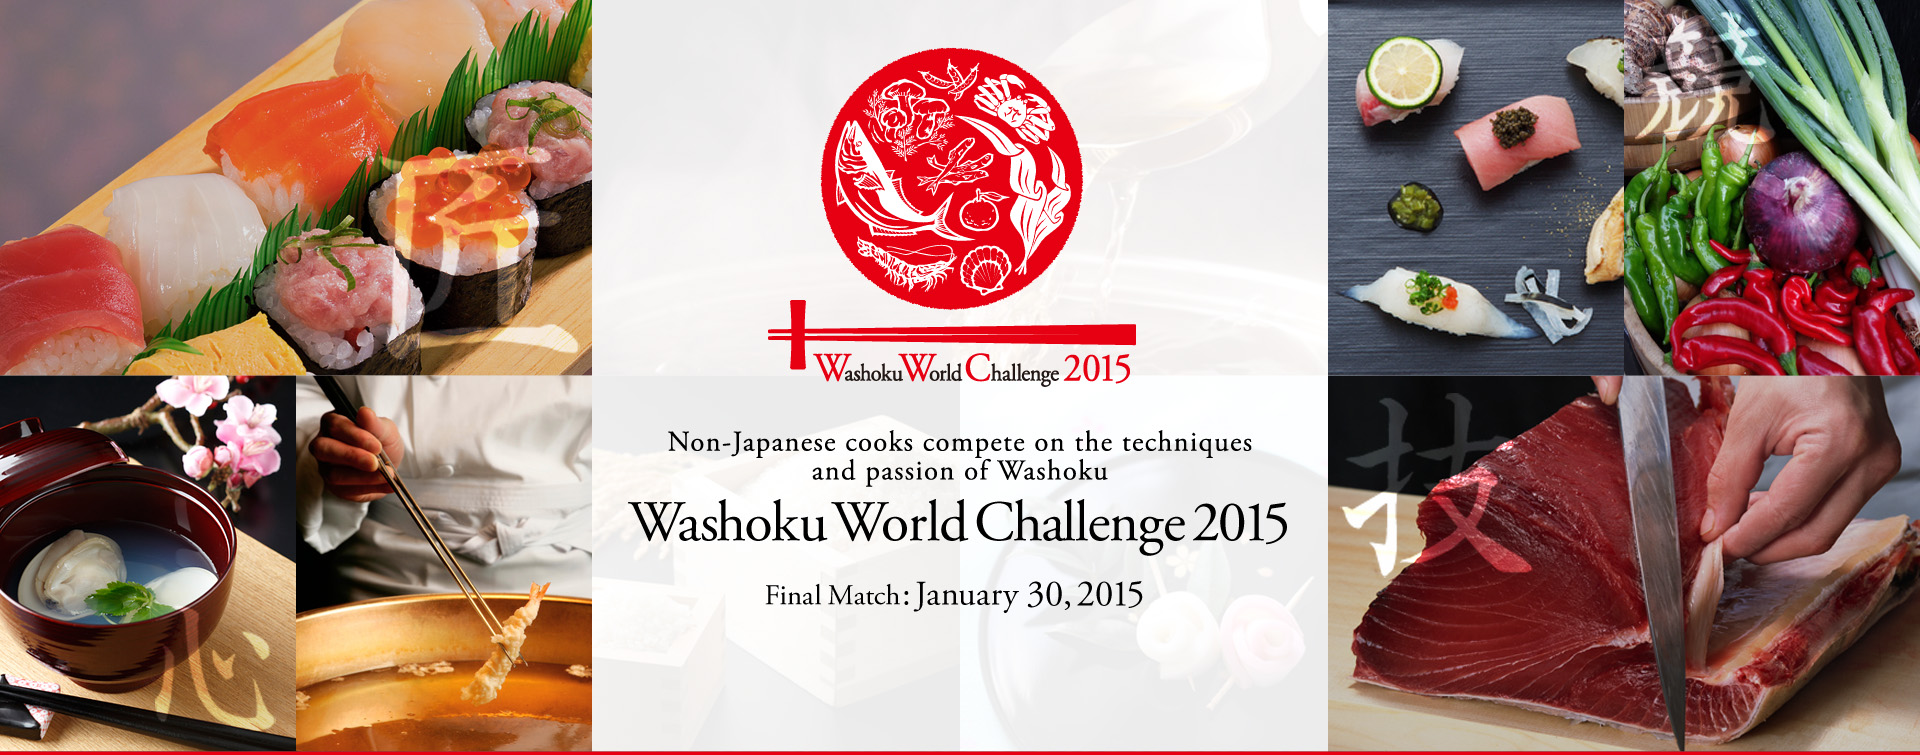 Washoku World Challange 2015